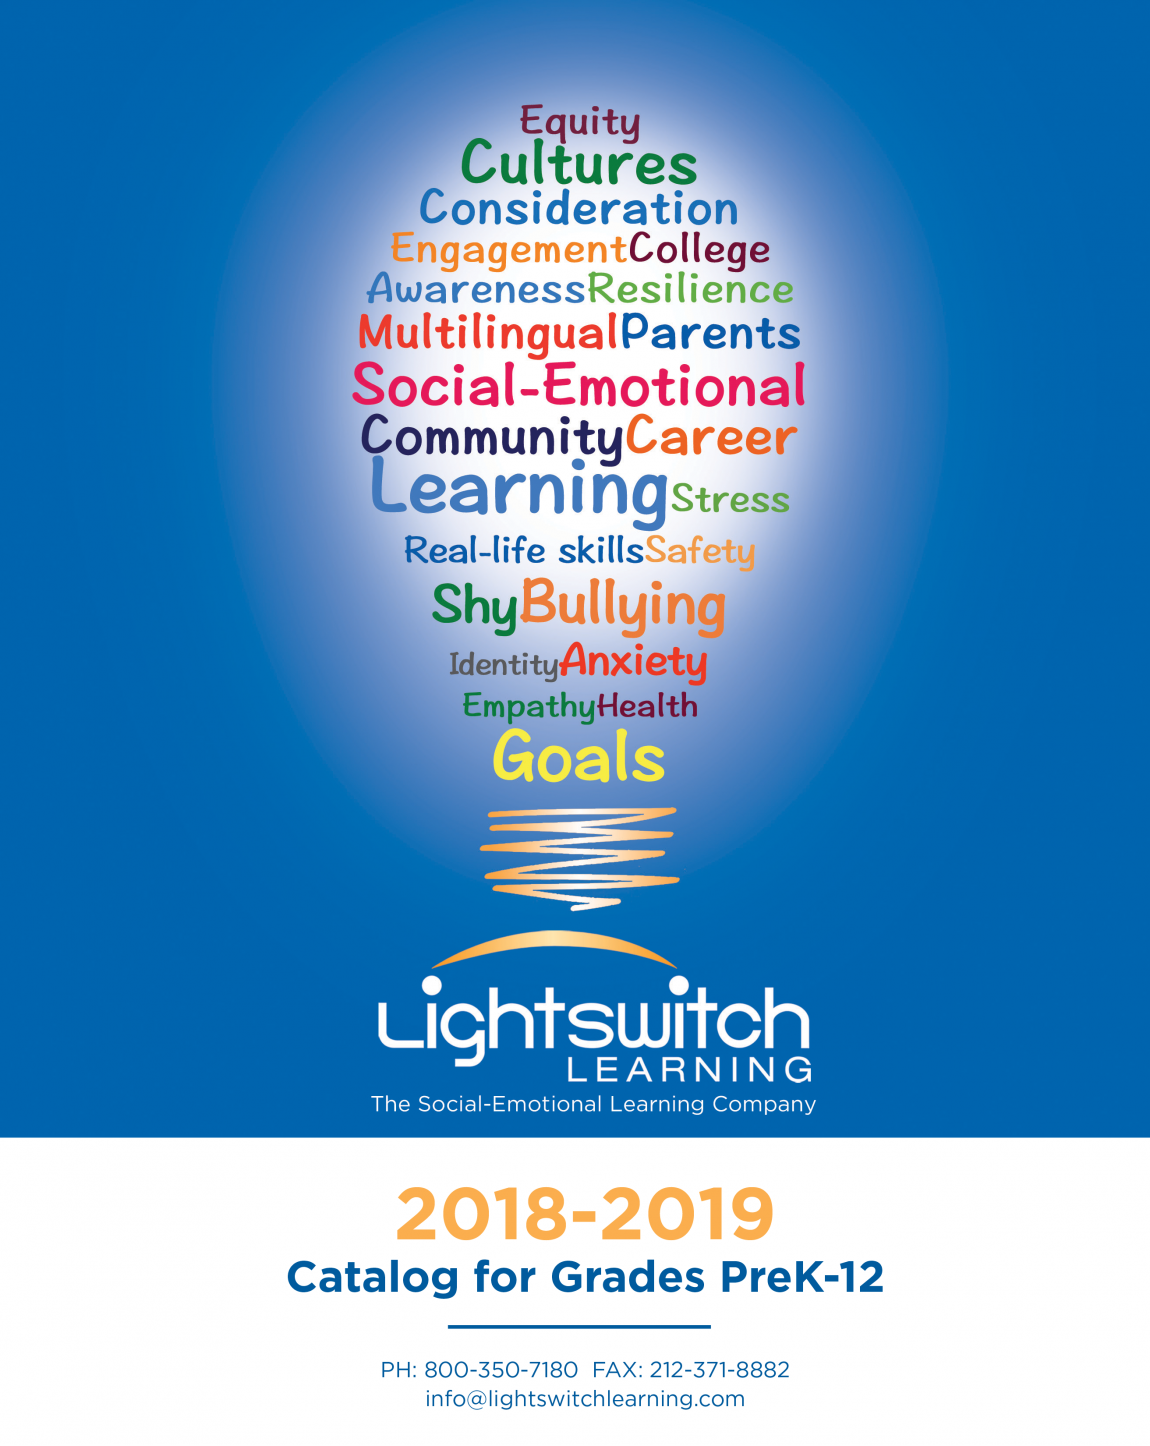 LightSwitch-Learning-Cover_FINAL-2.0.png